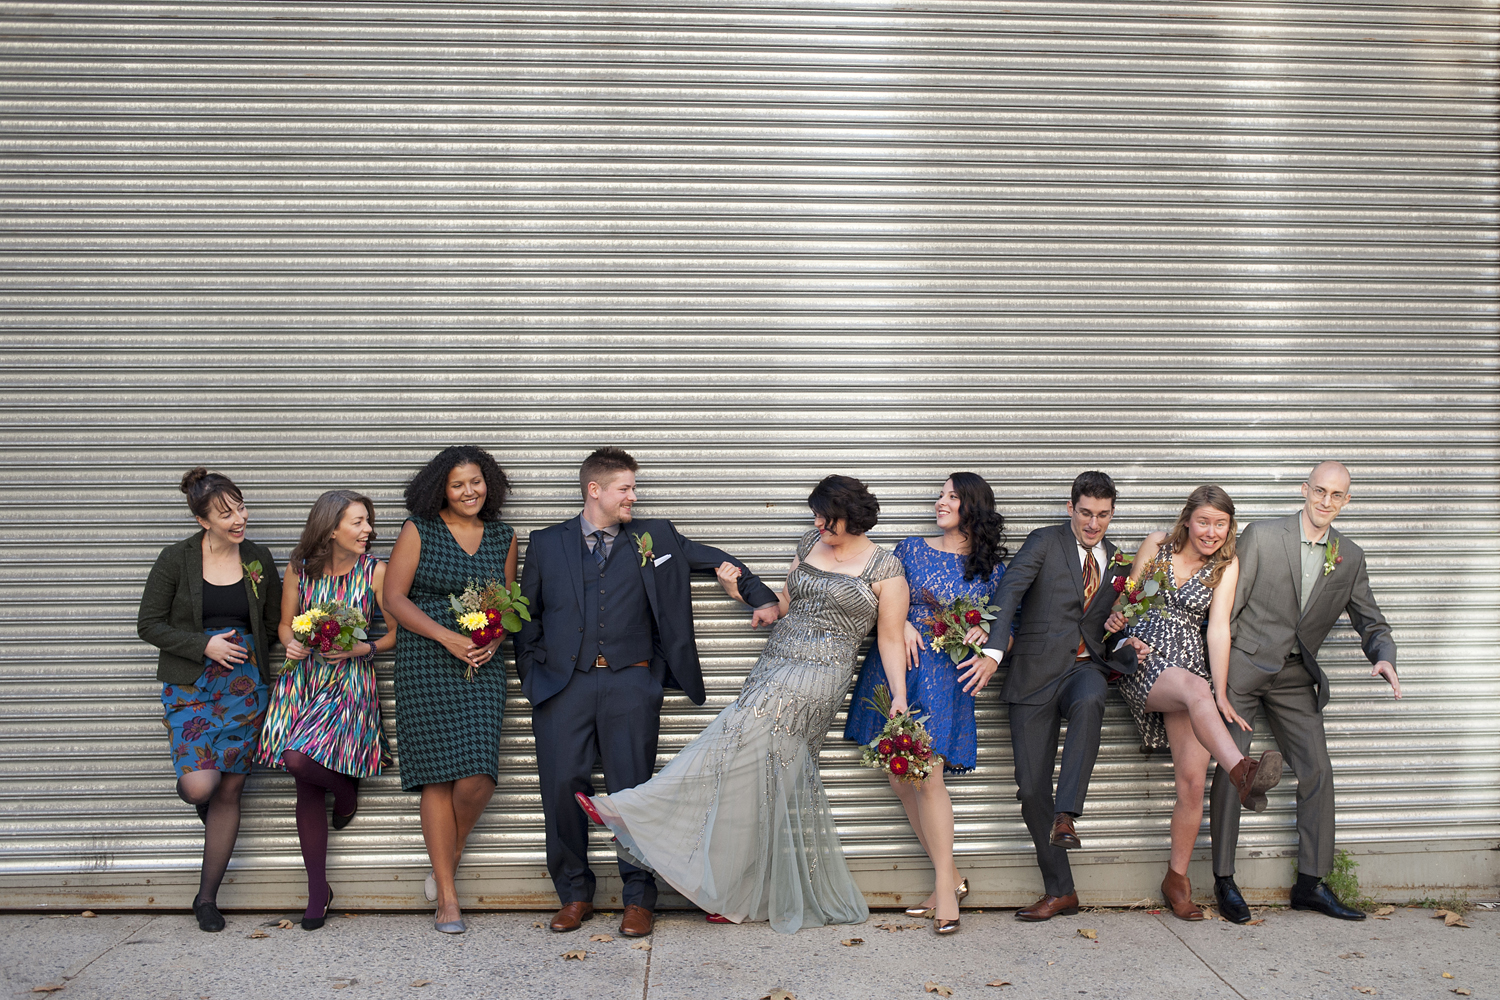 creative wedding party portrait. Brooklyn wedding photographers